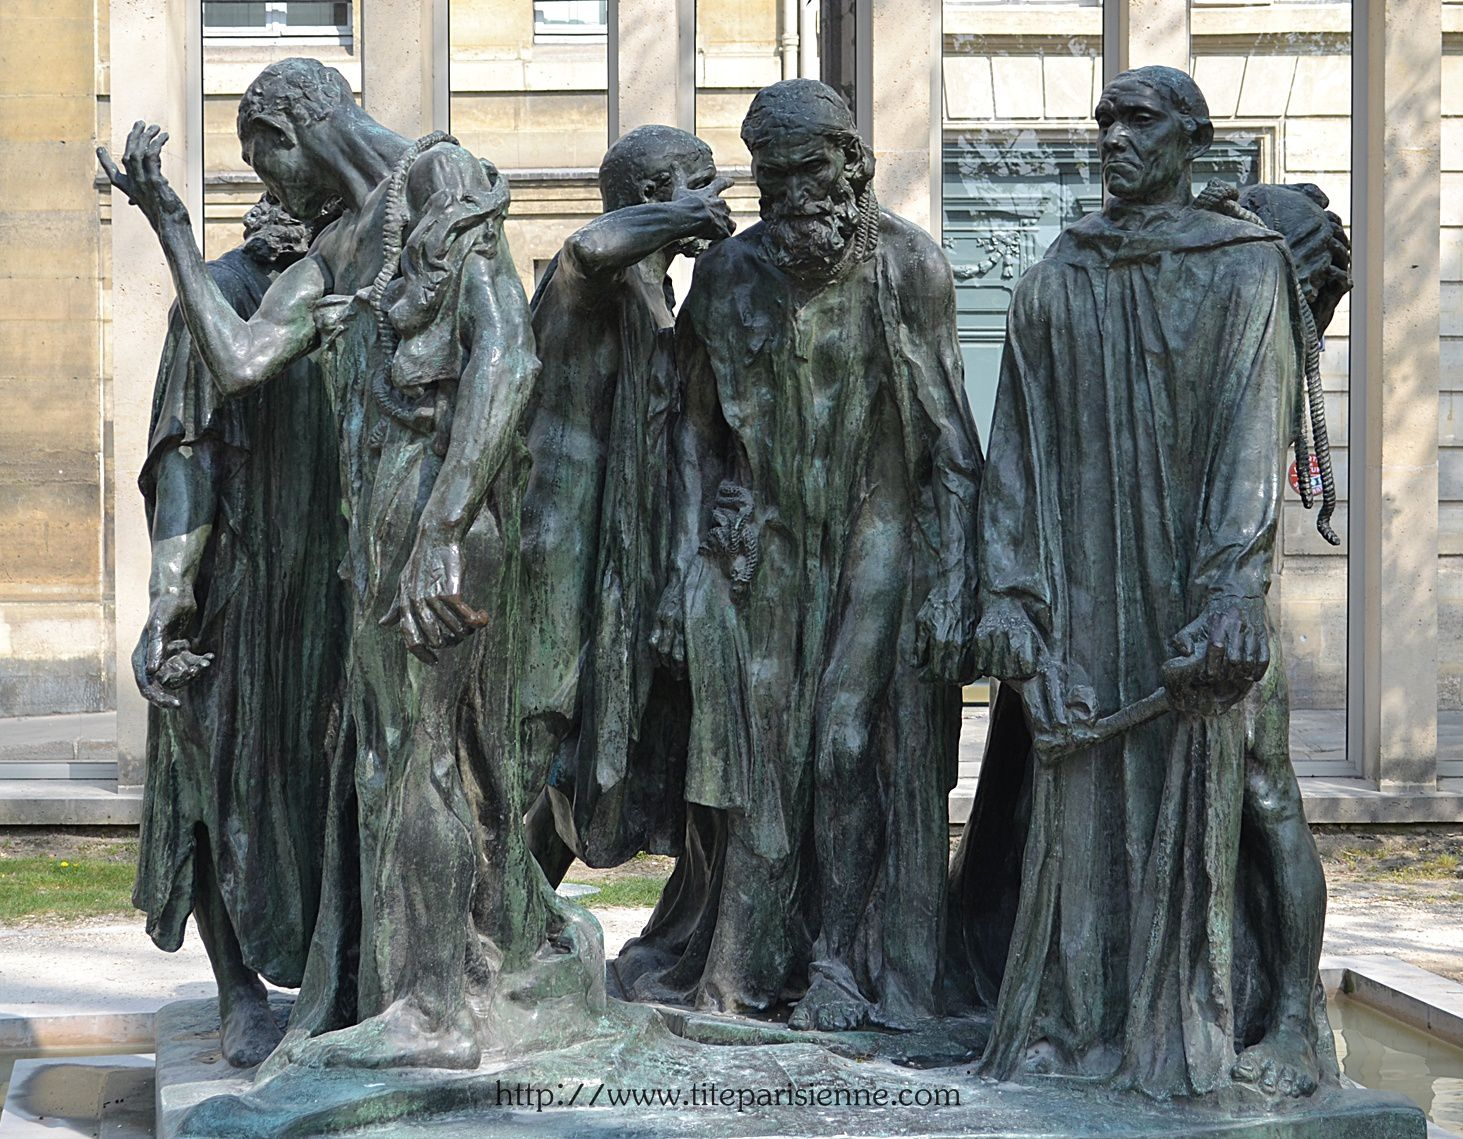 19-avril-2012-Sculptures-musee-Rodin-1.jpg